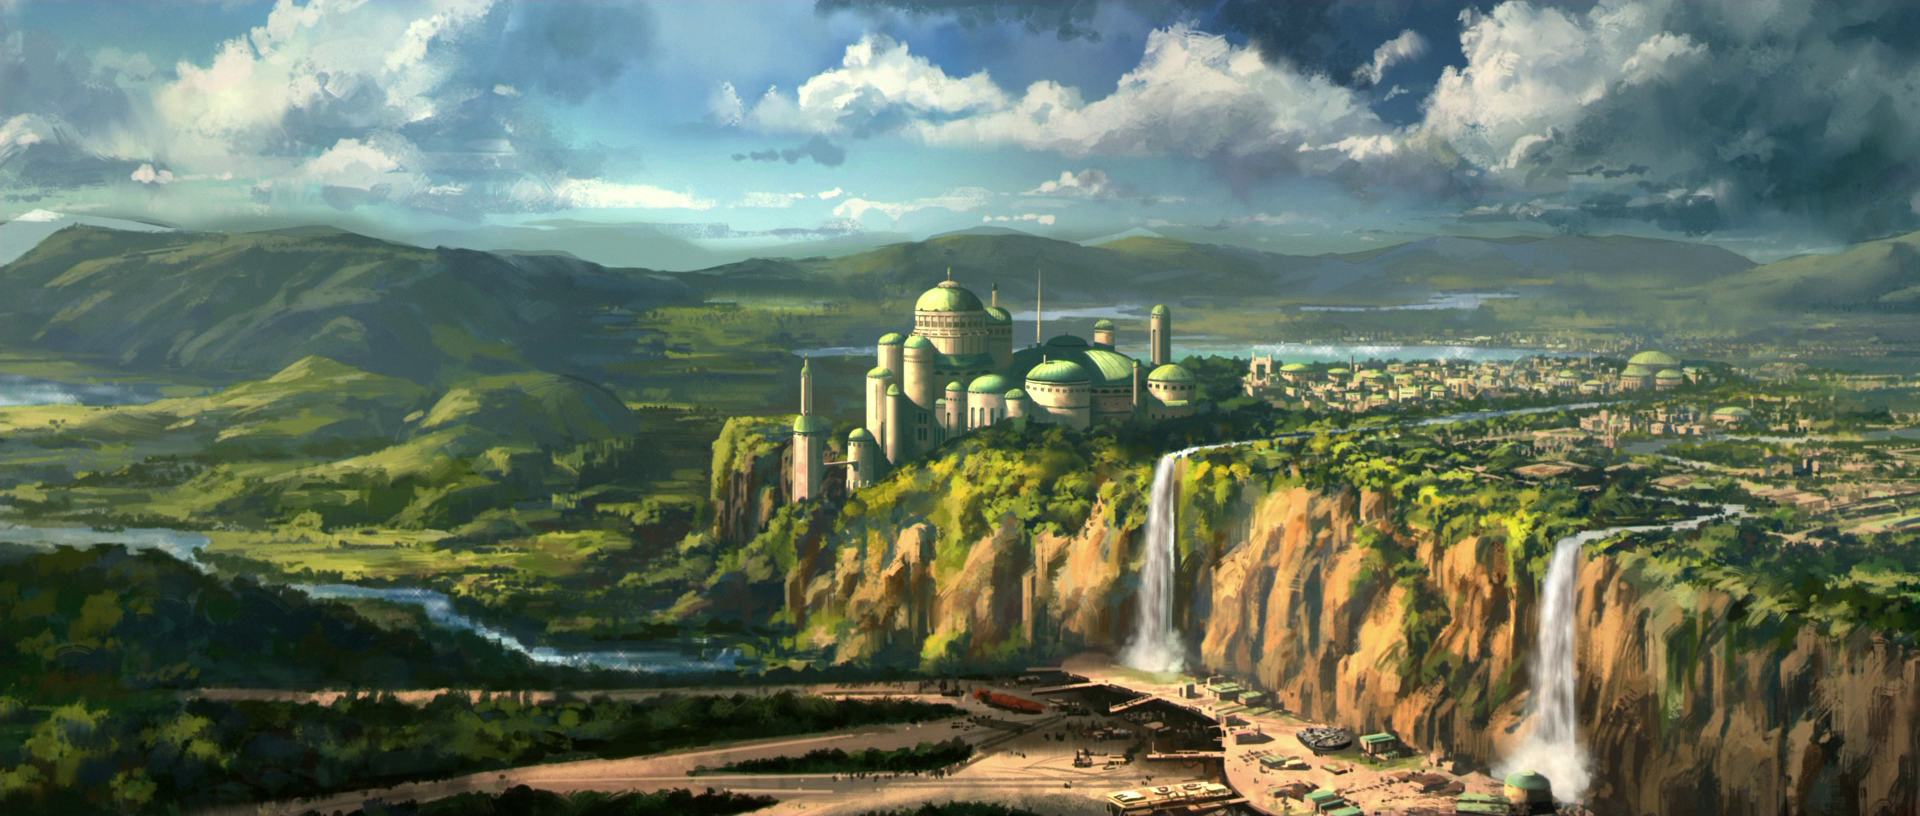 10 Planets We Want Ea To Add To Star Wars Battlefront Venturebeat